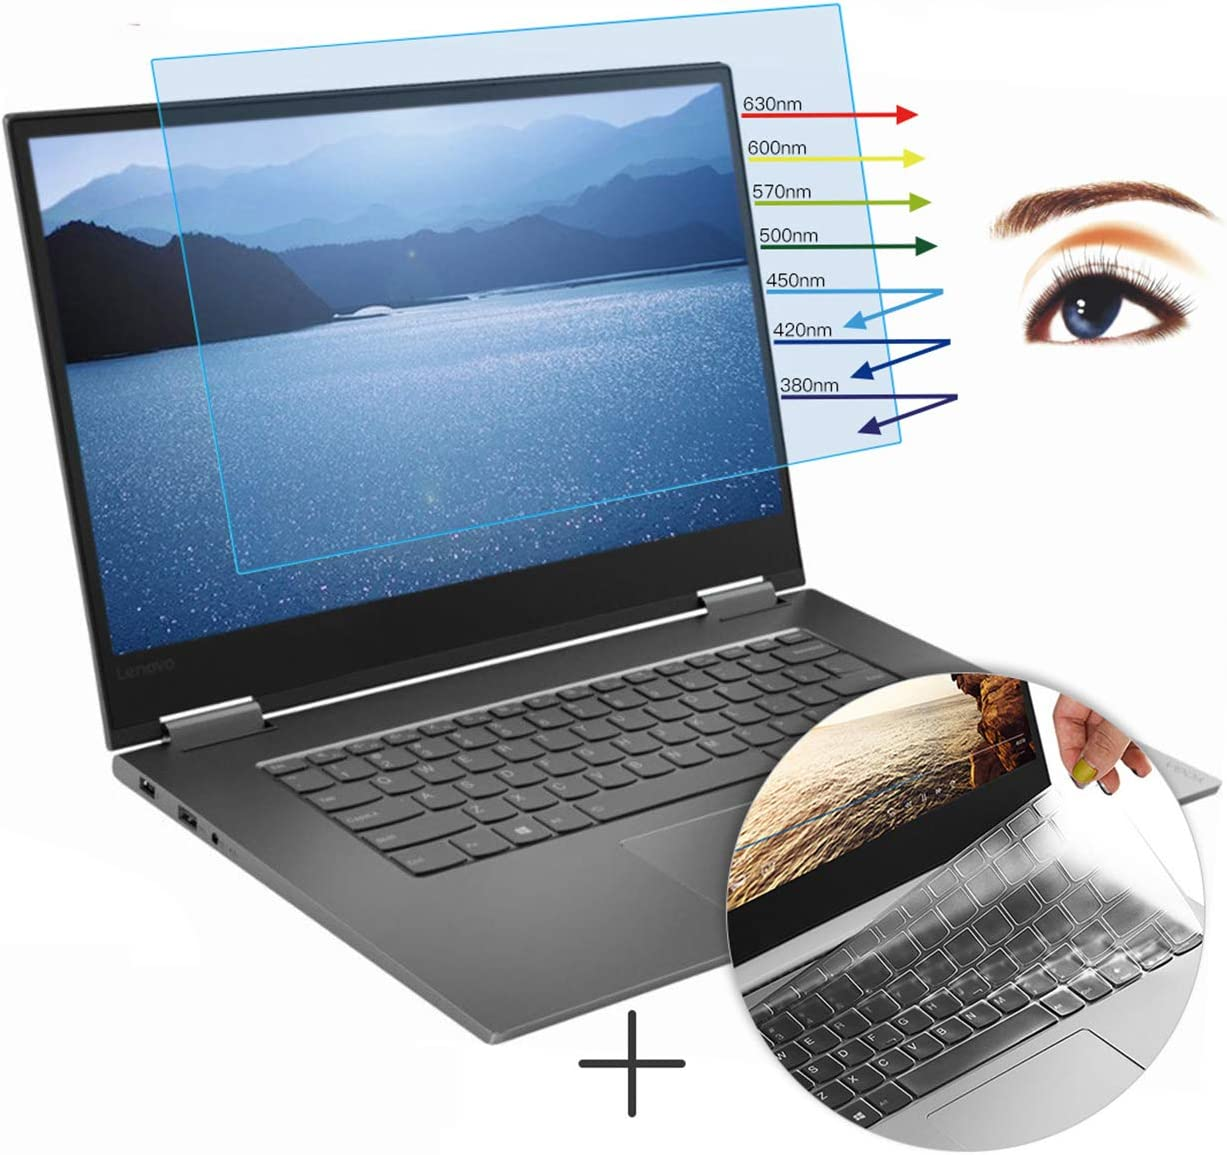 CaseBuy Anti-Glare Screen Protector Eye Protection Blue Light Filter for Lenovo Yoga 730 2-in-1 15.6 Inch & Ultra Thin TPU Keyboard Cover Accessories for Yoga 730 15.6""